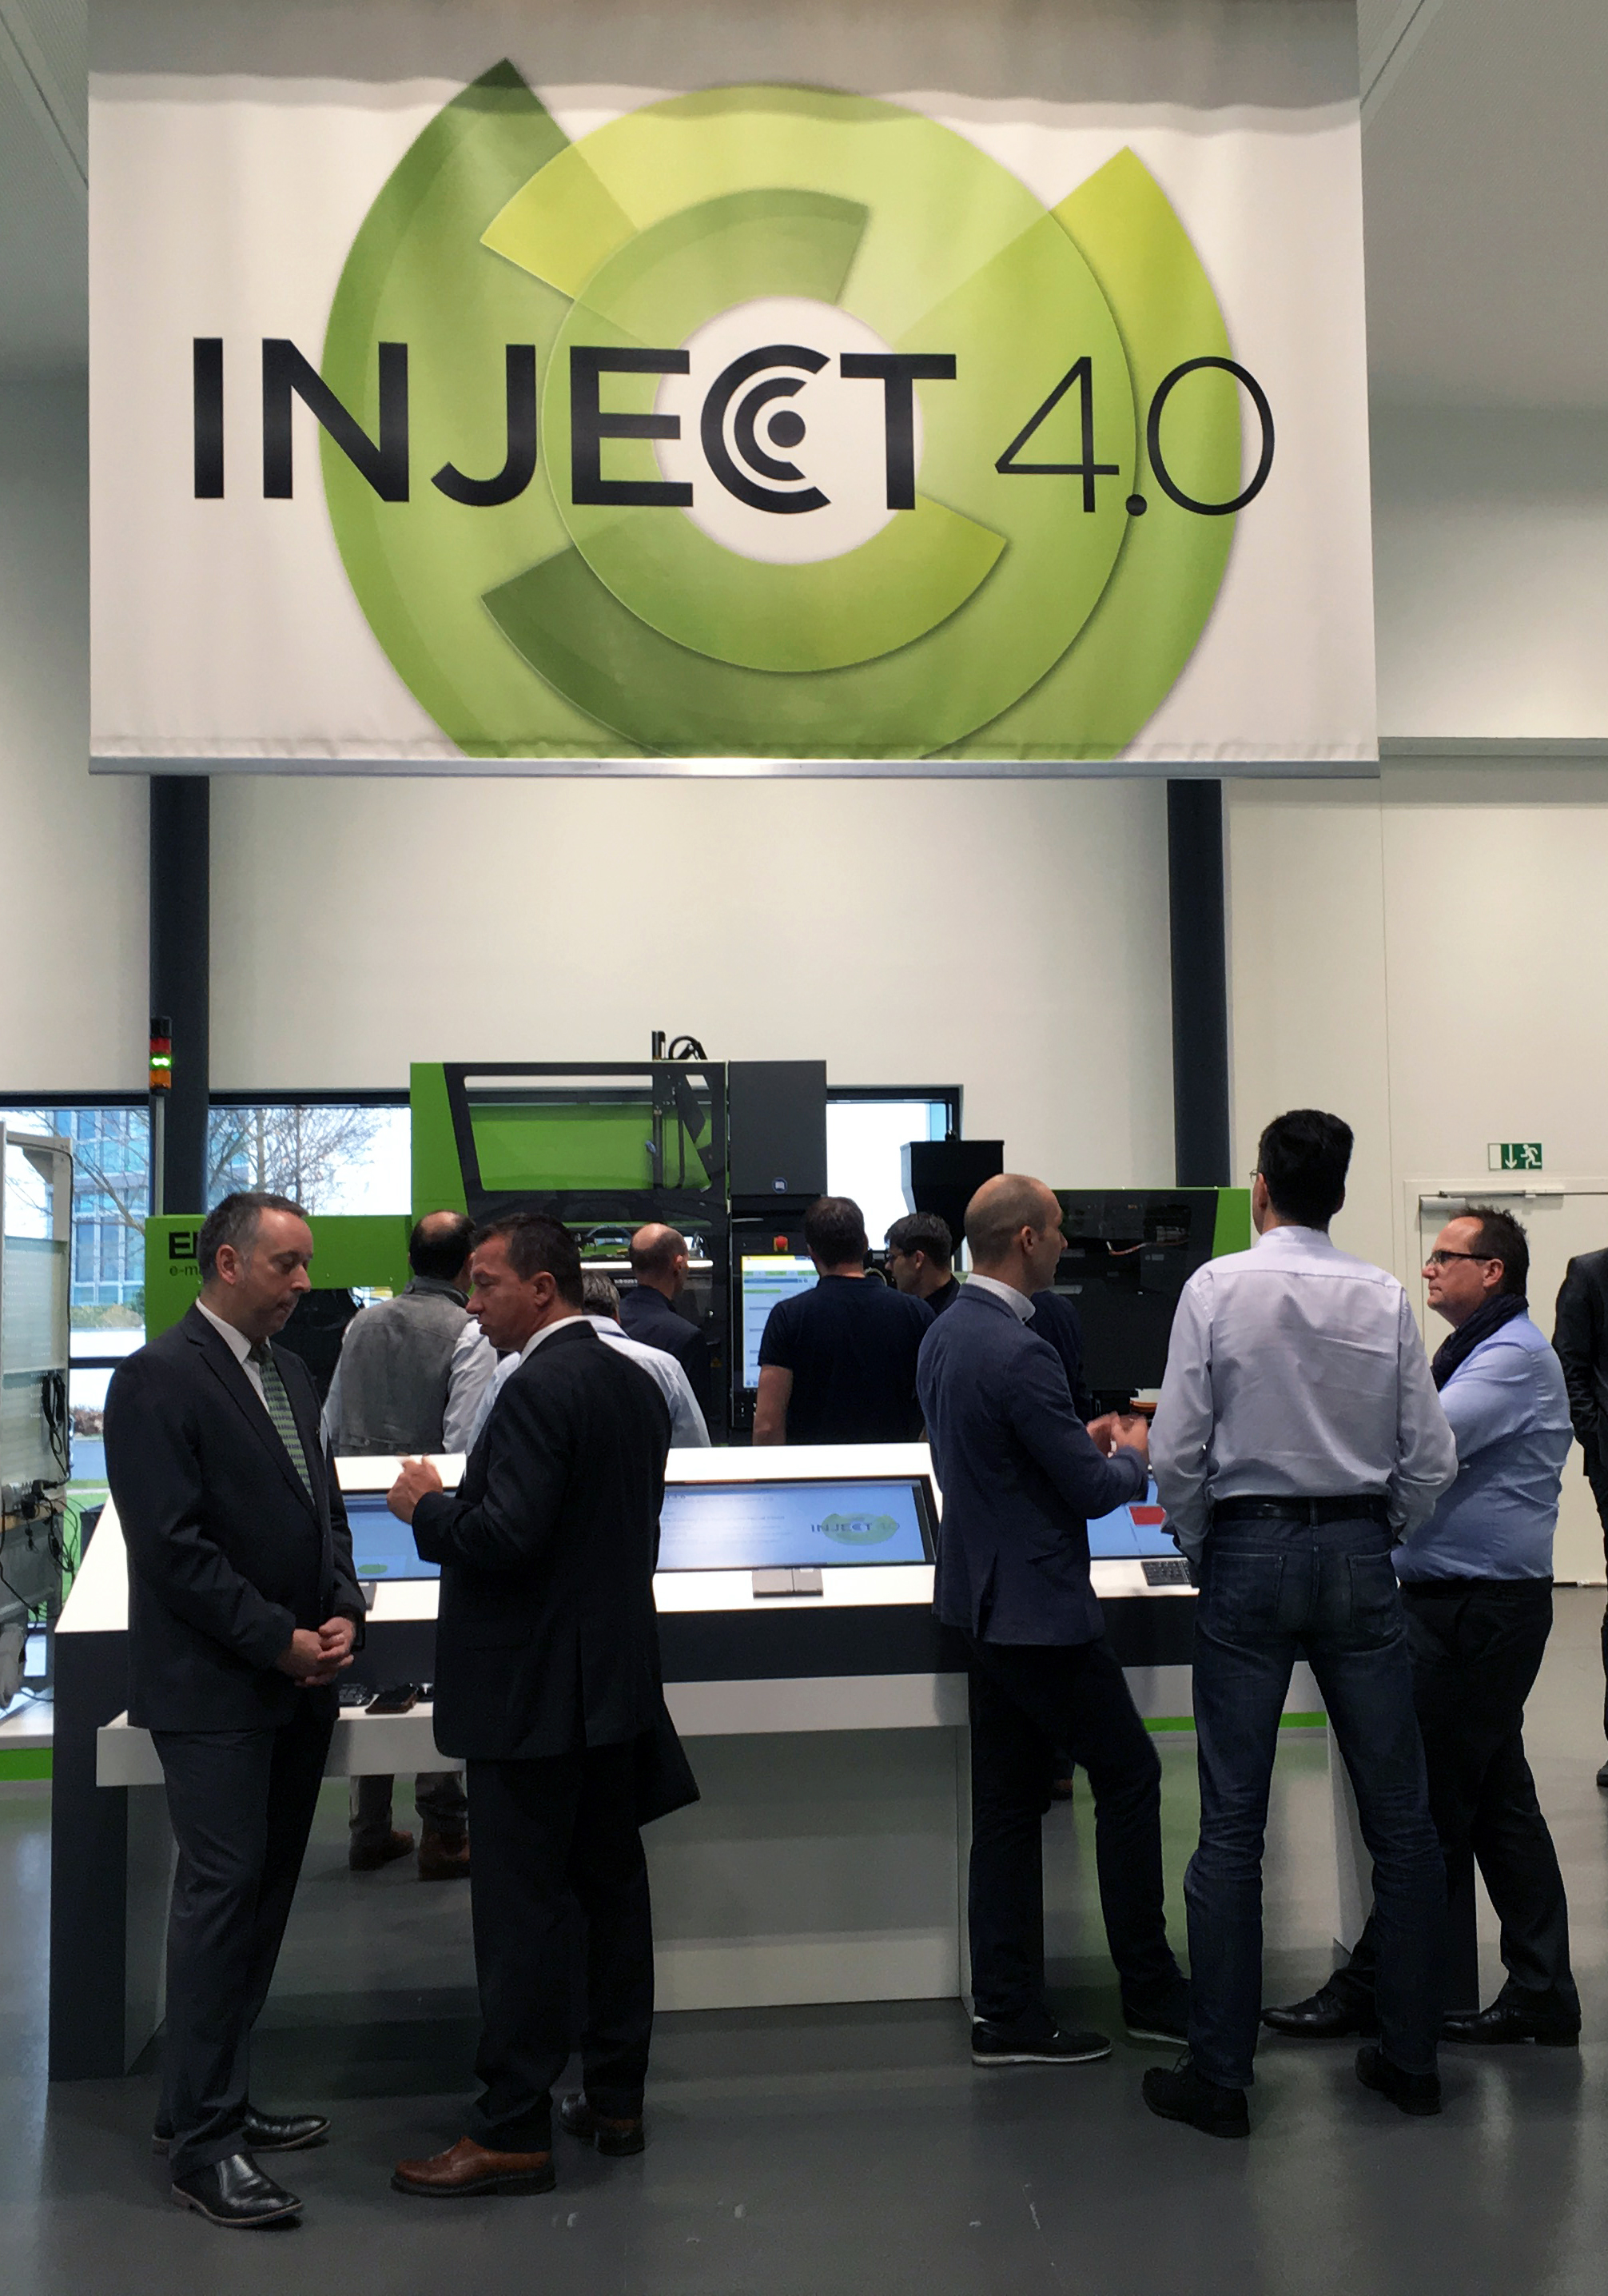 inject 4.0 is a firm focus of Engel's interactive new technology centre. (Source: Engel)